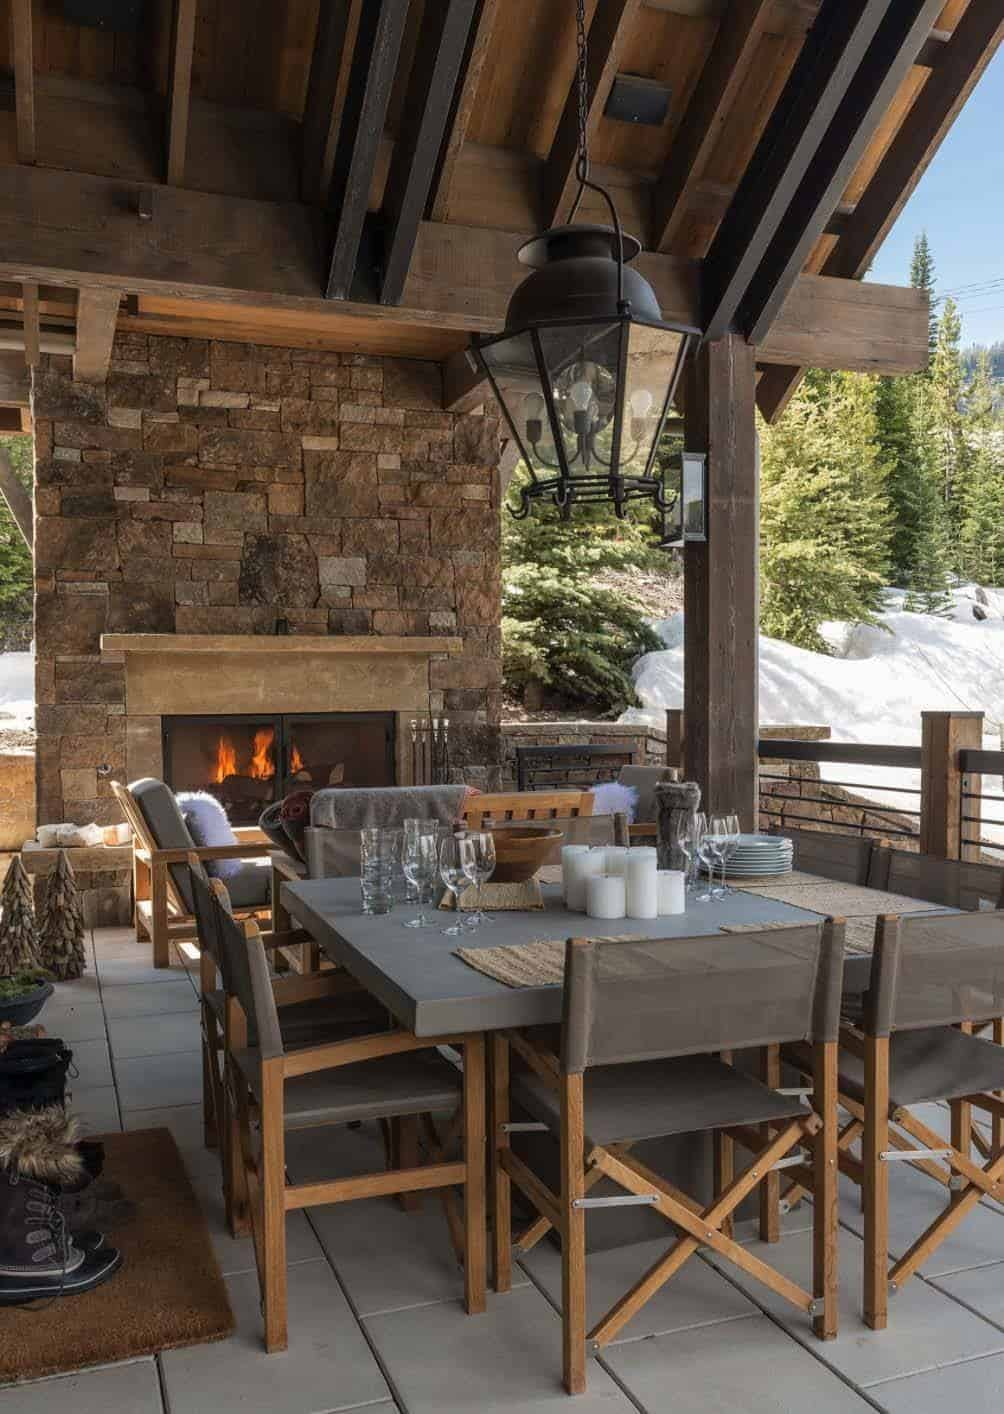 Ski-in/ski-out chalet in Montana with rustic-modern styling on Mountain Backyard Ideas  id=49946